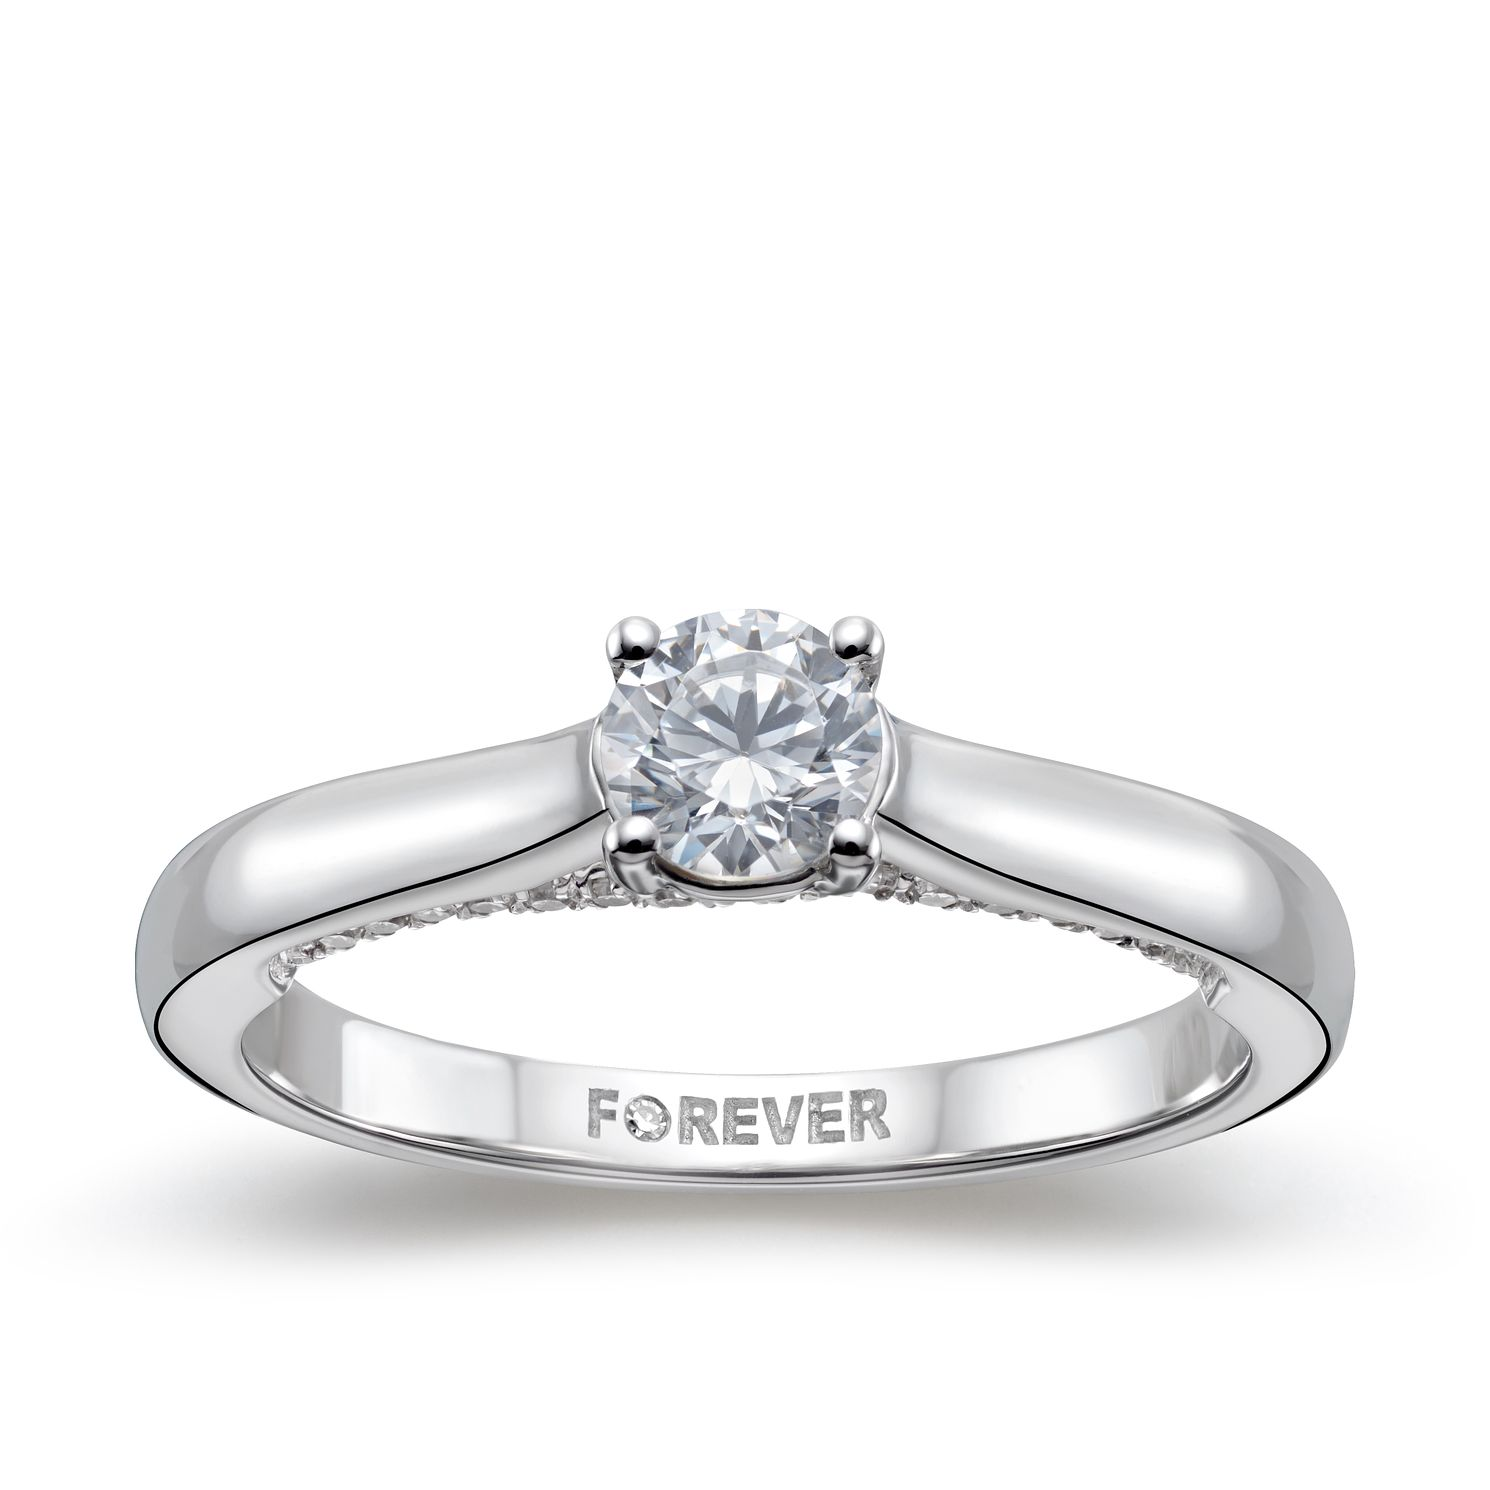 inspiration rings creek engagement battle bands corners download mi amp wedding in stylist